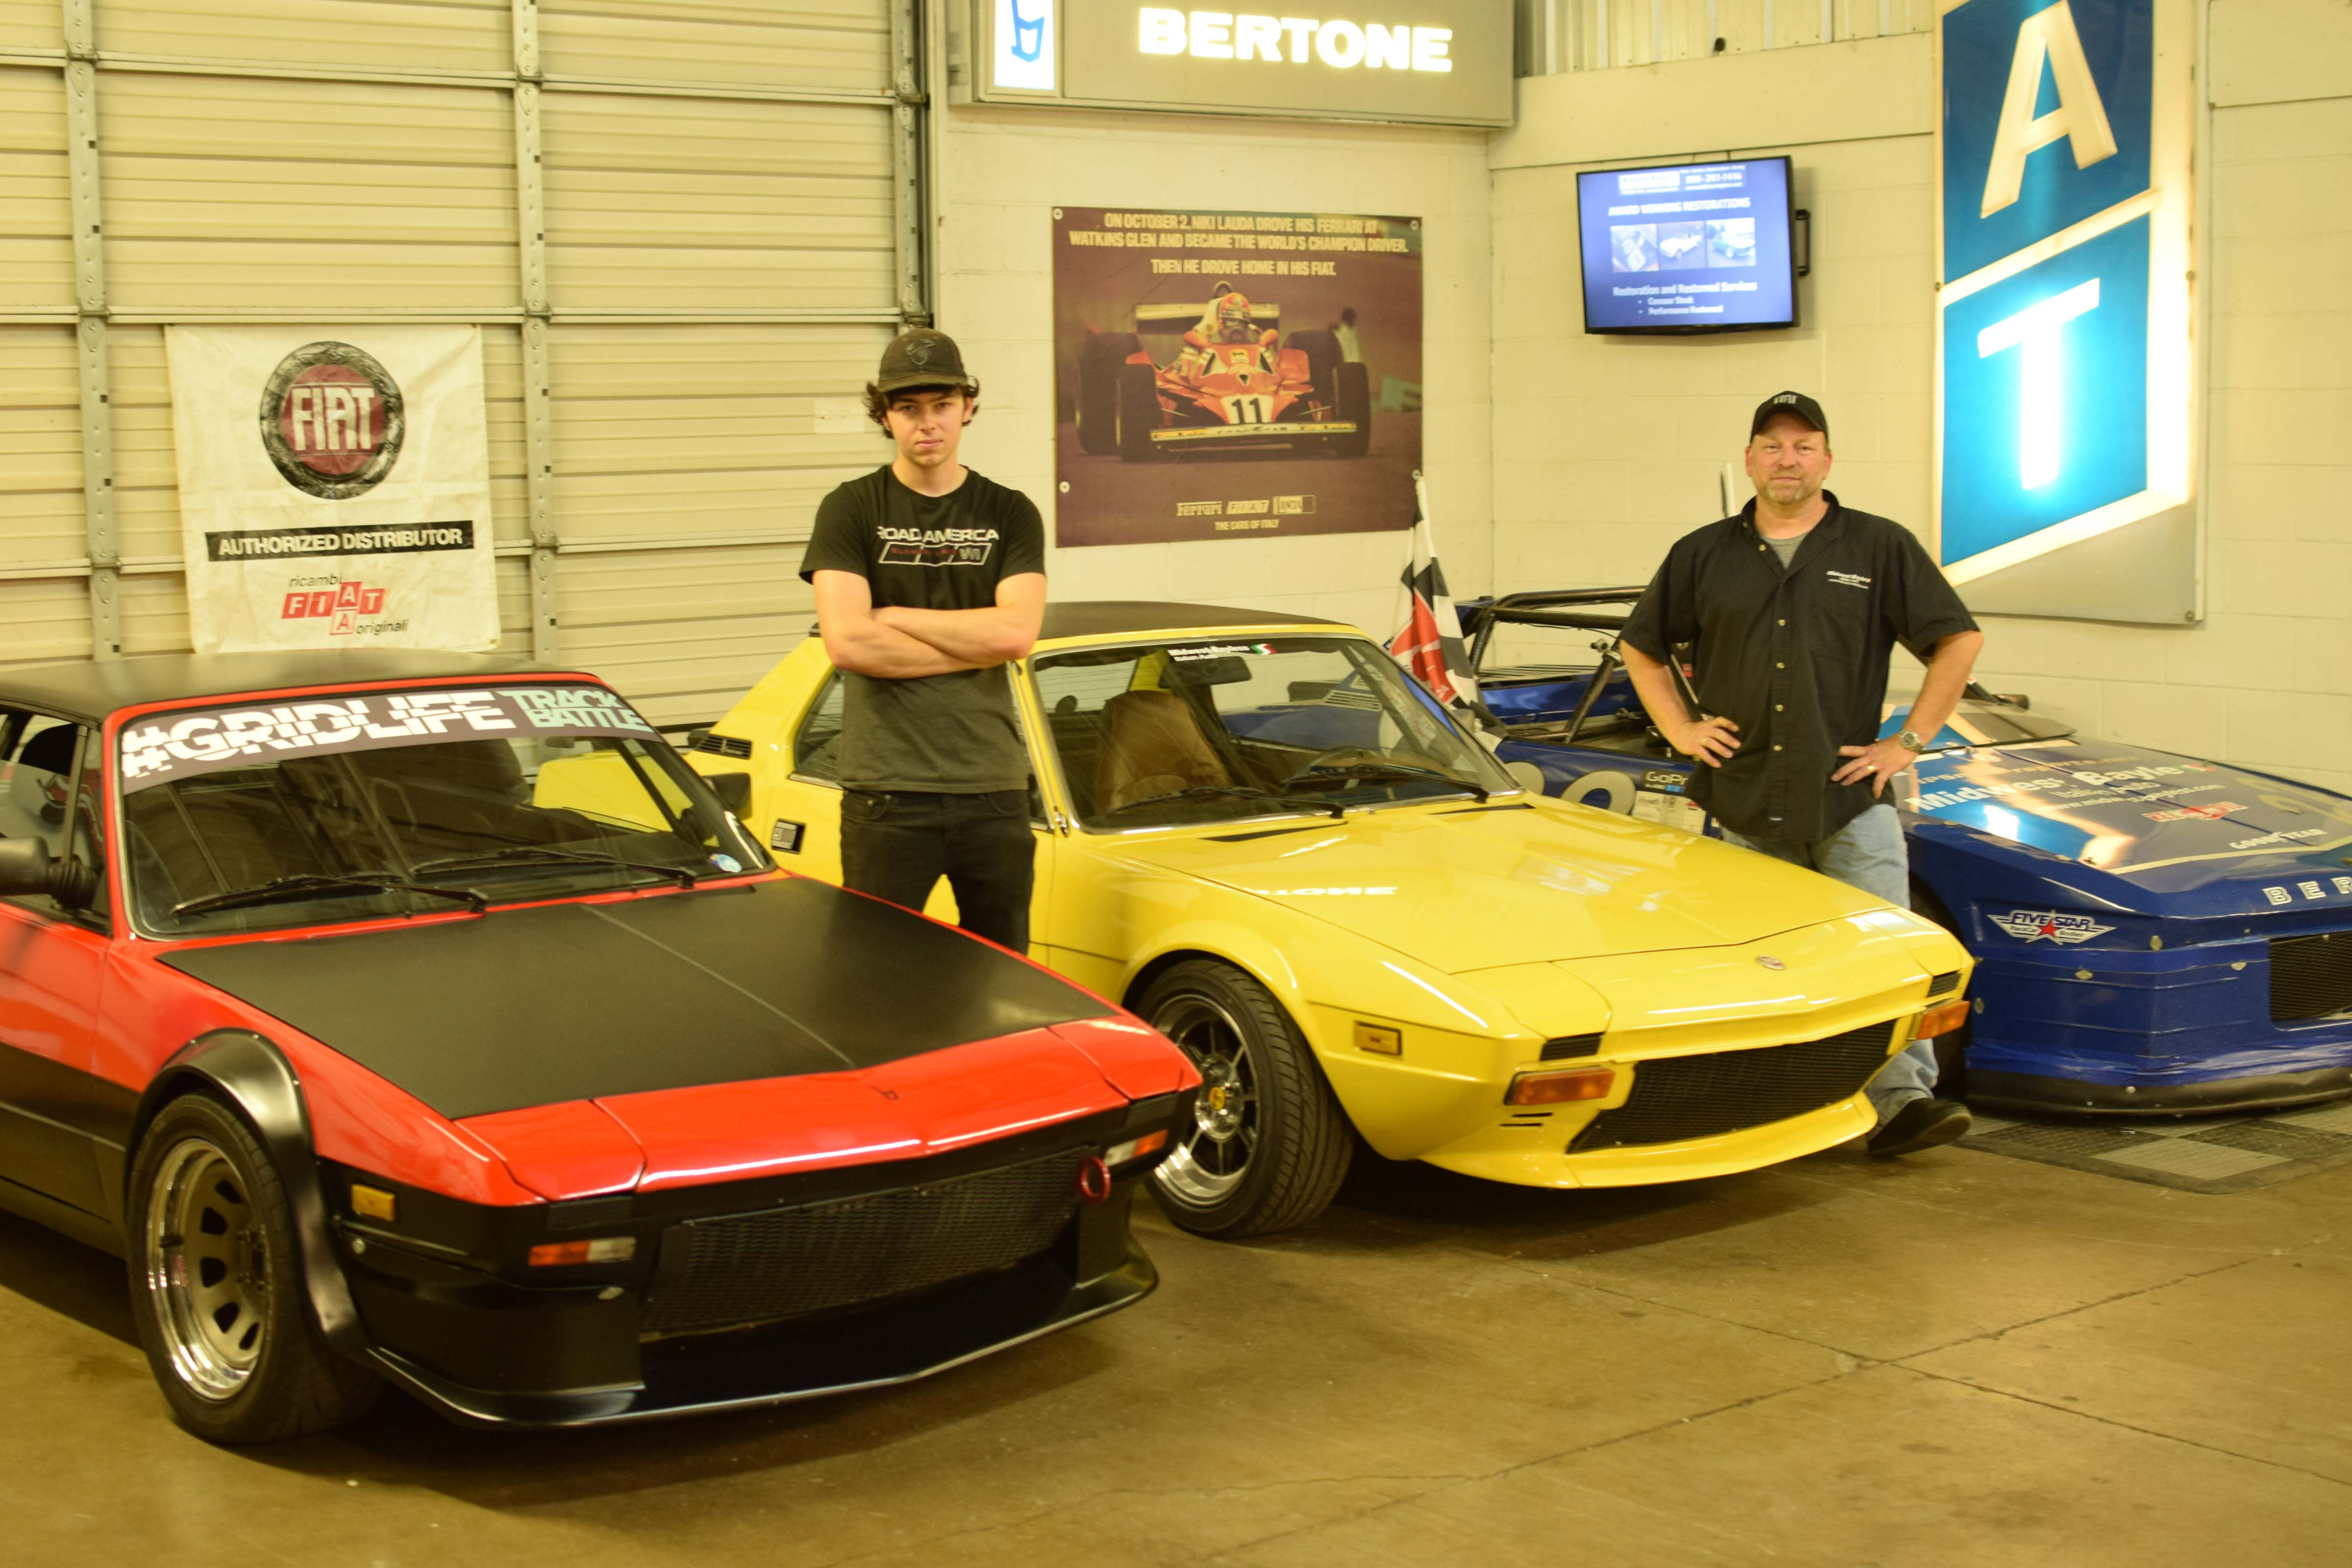 Fiat x19 shop with cars and owners